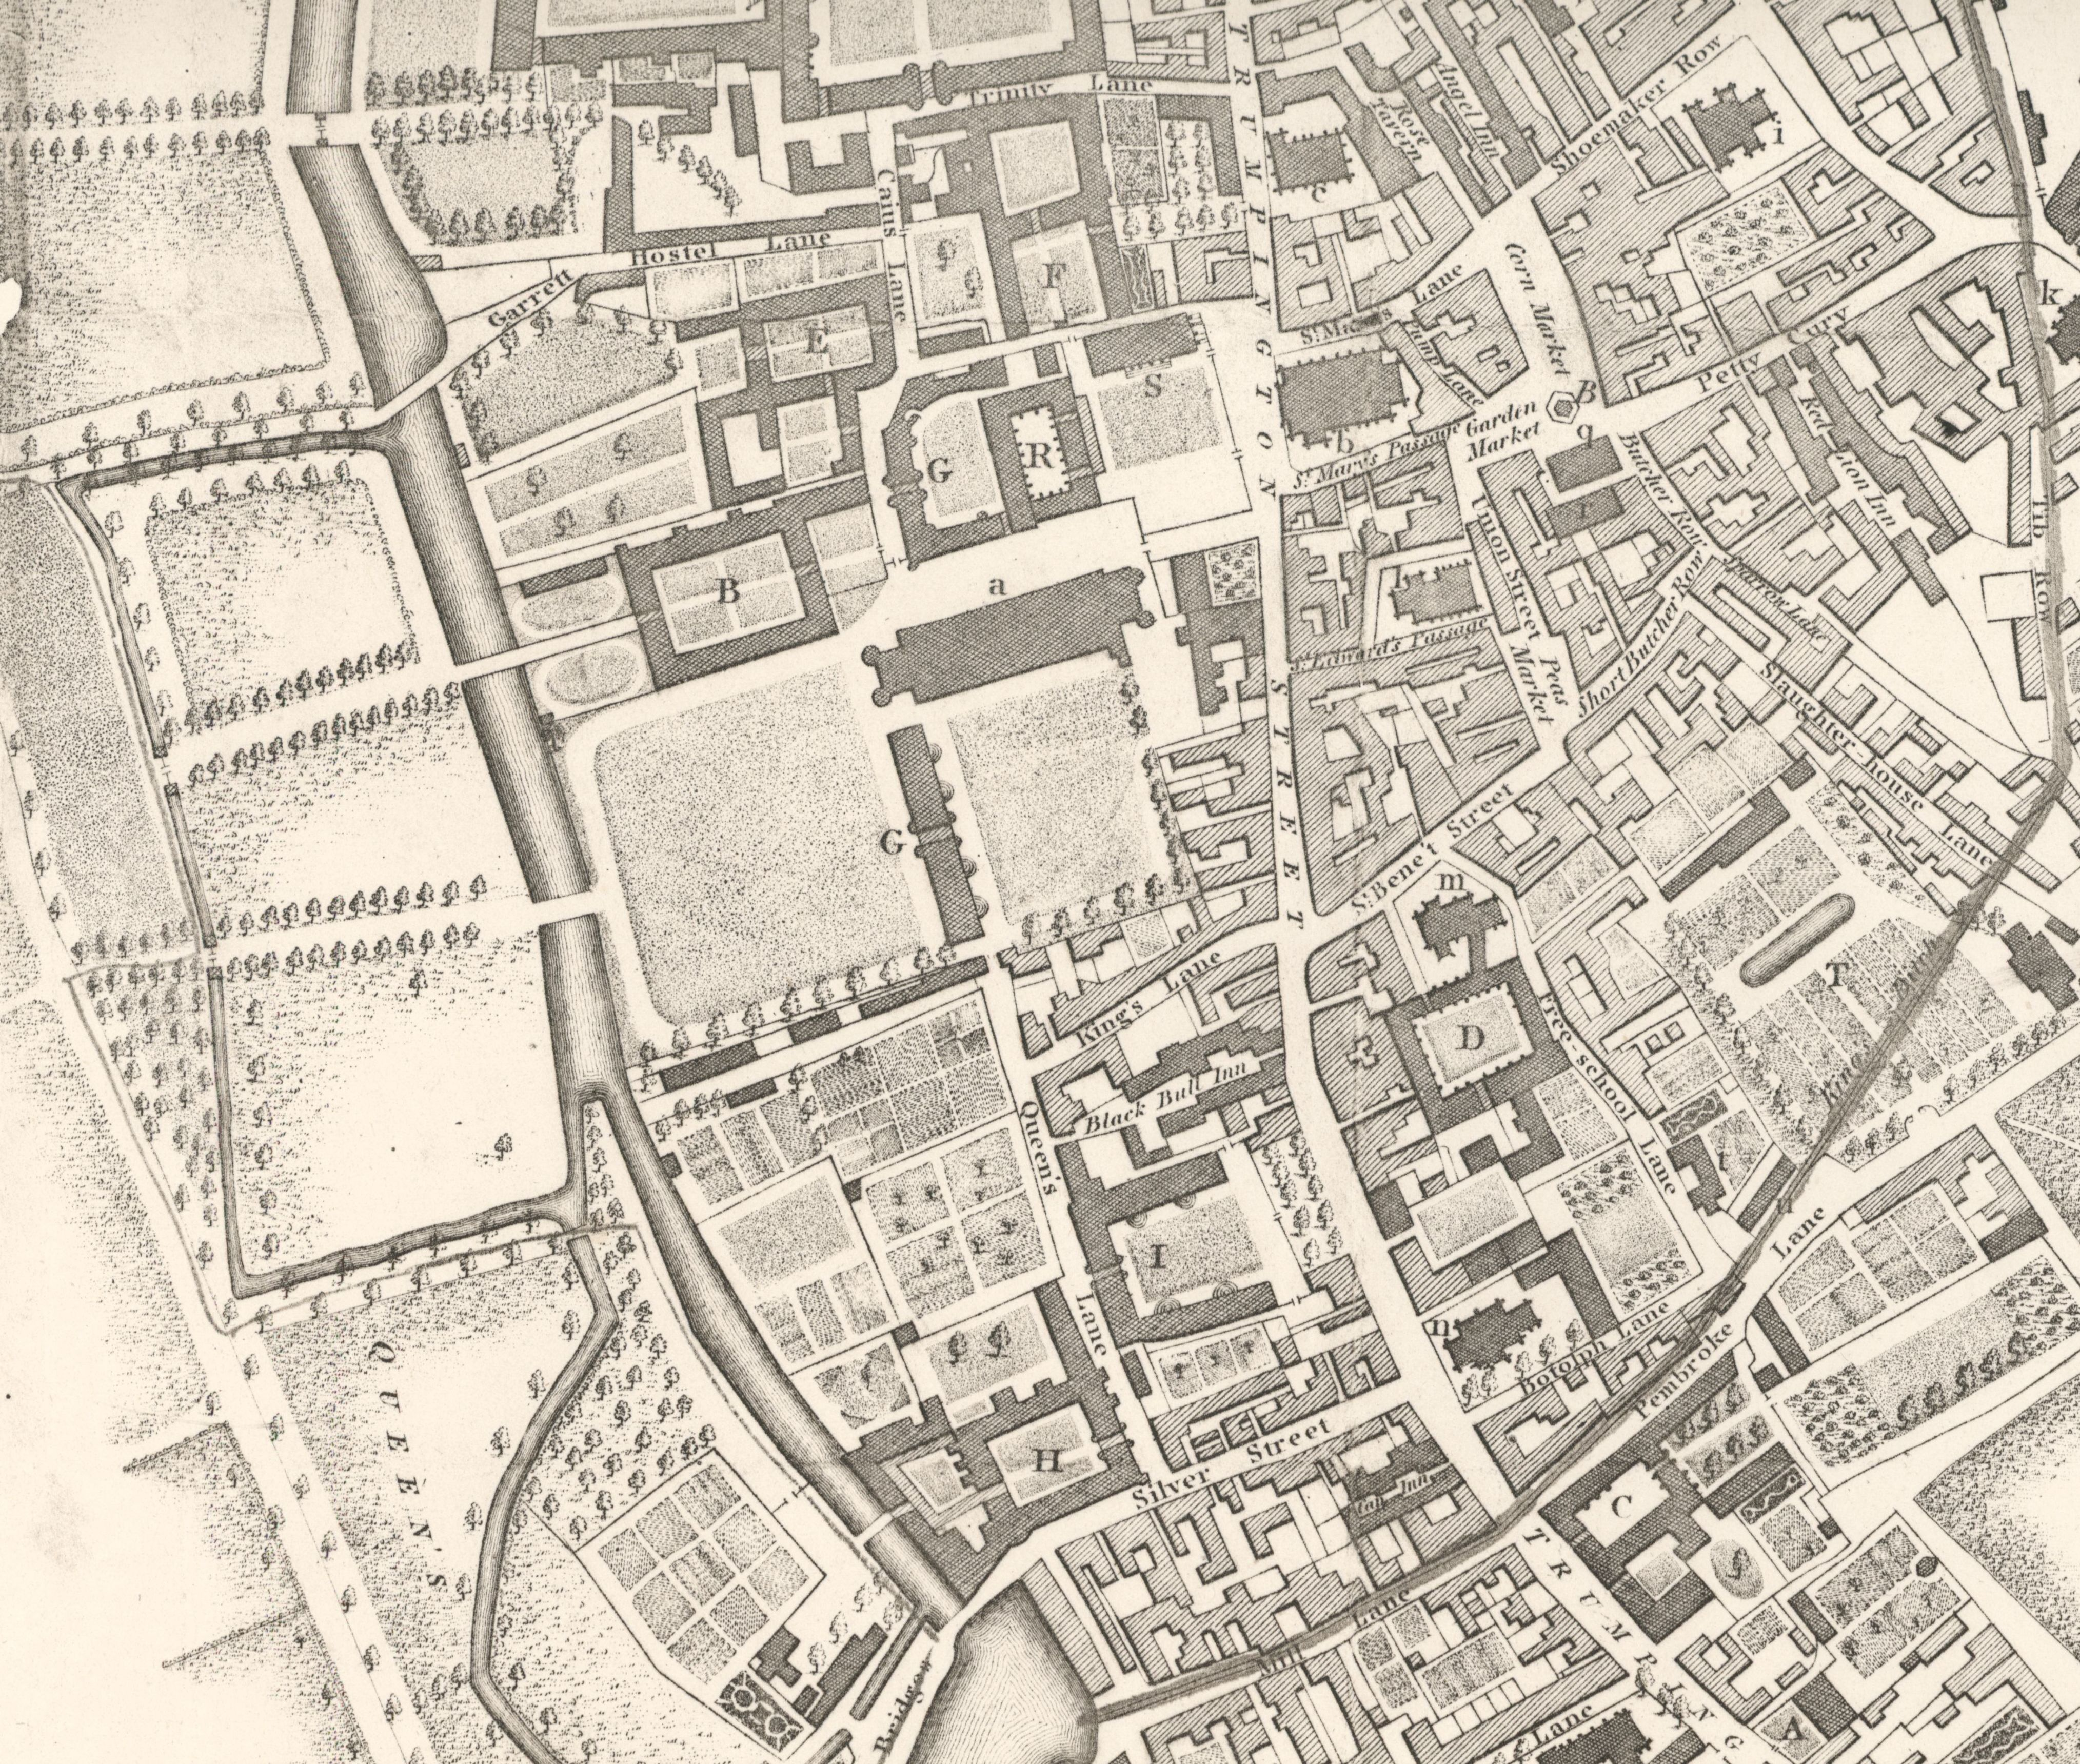 Part of a birds-eye view of Cambridge, by William Custance, 1798, showing the College site when the Gibbs building was complete but the Old Court was still in use. [Clark and Gray, plate 7b]